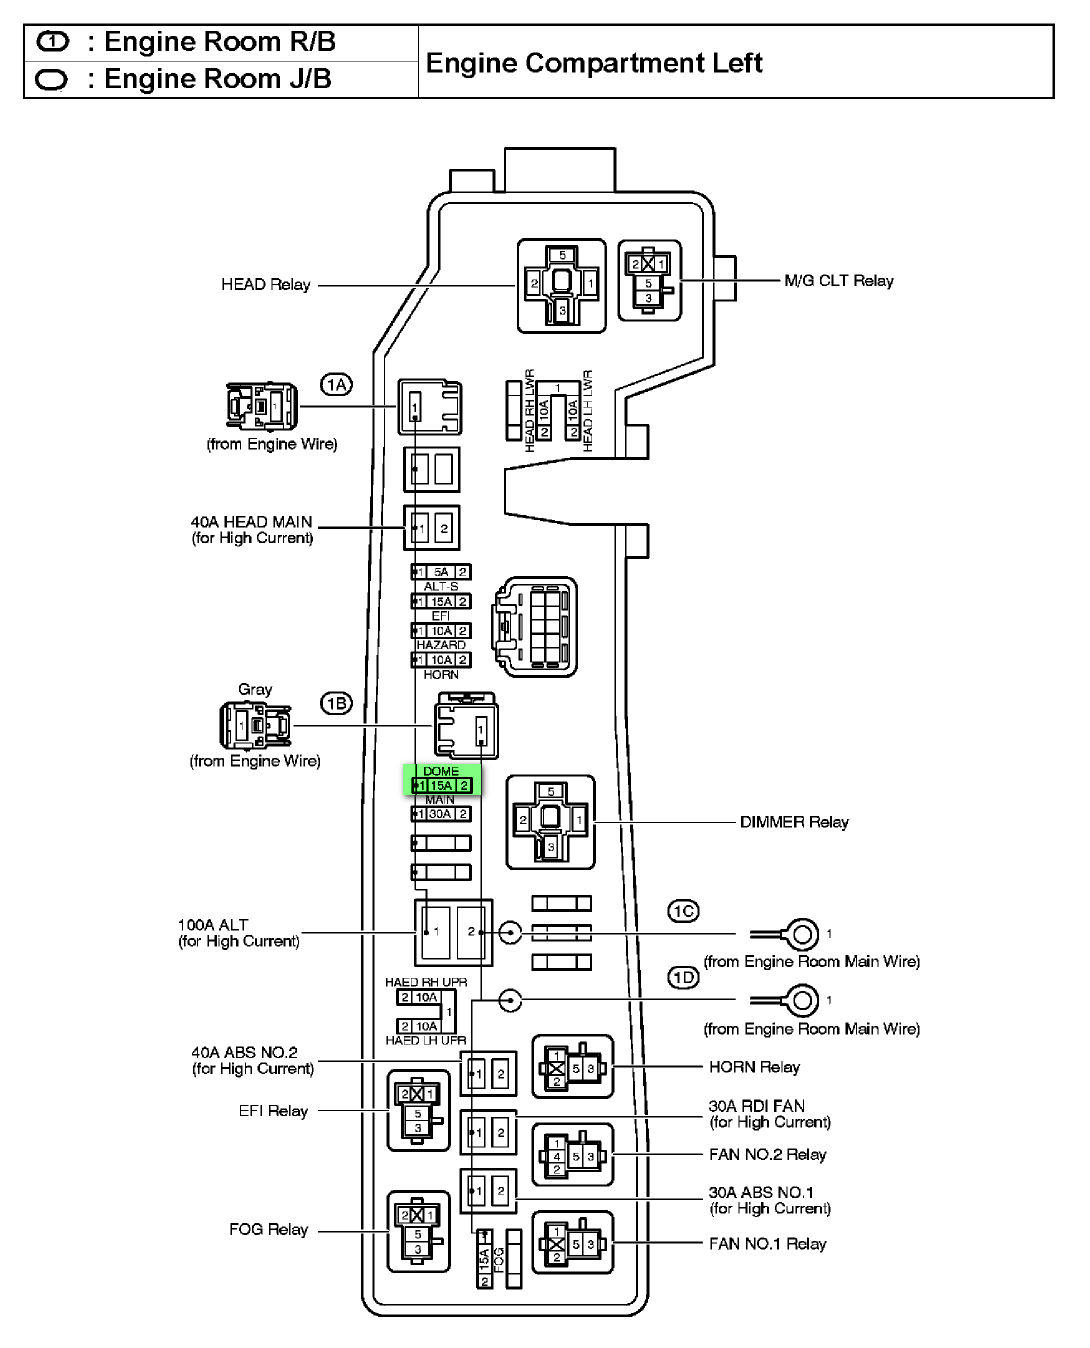 small resolution of fuse box in 2006 toyota corolla wiring diagrams bibtoyota corolla 2006 fuse box diagram 2004 toyota